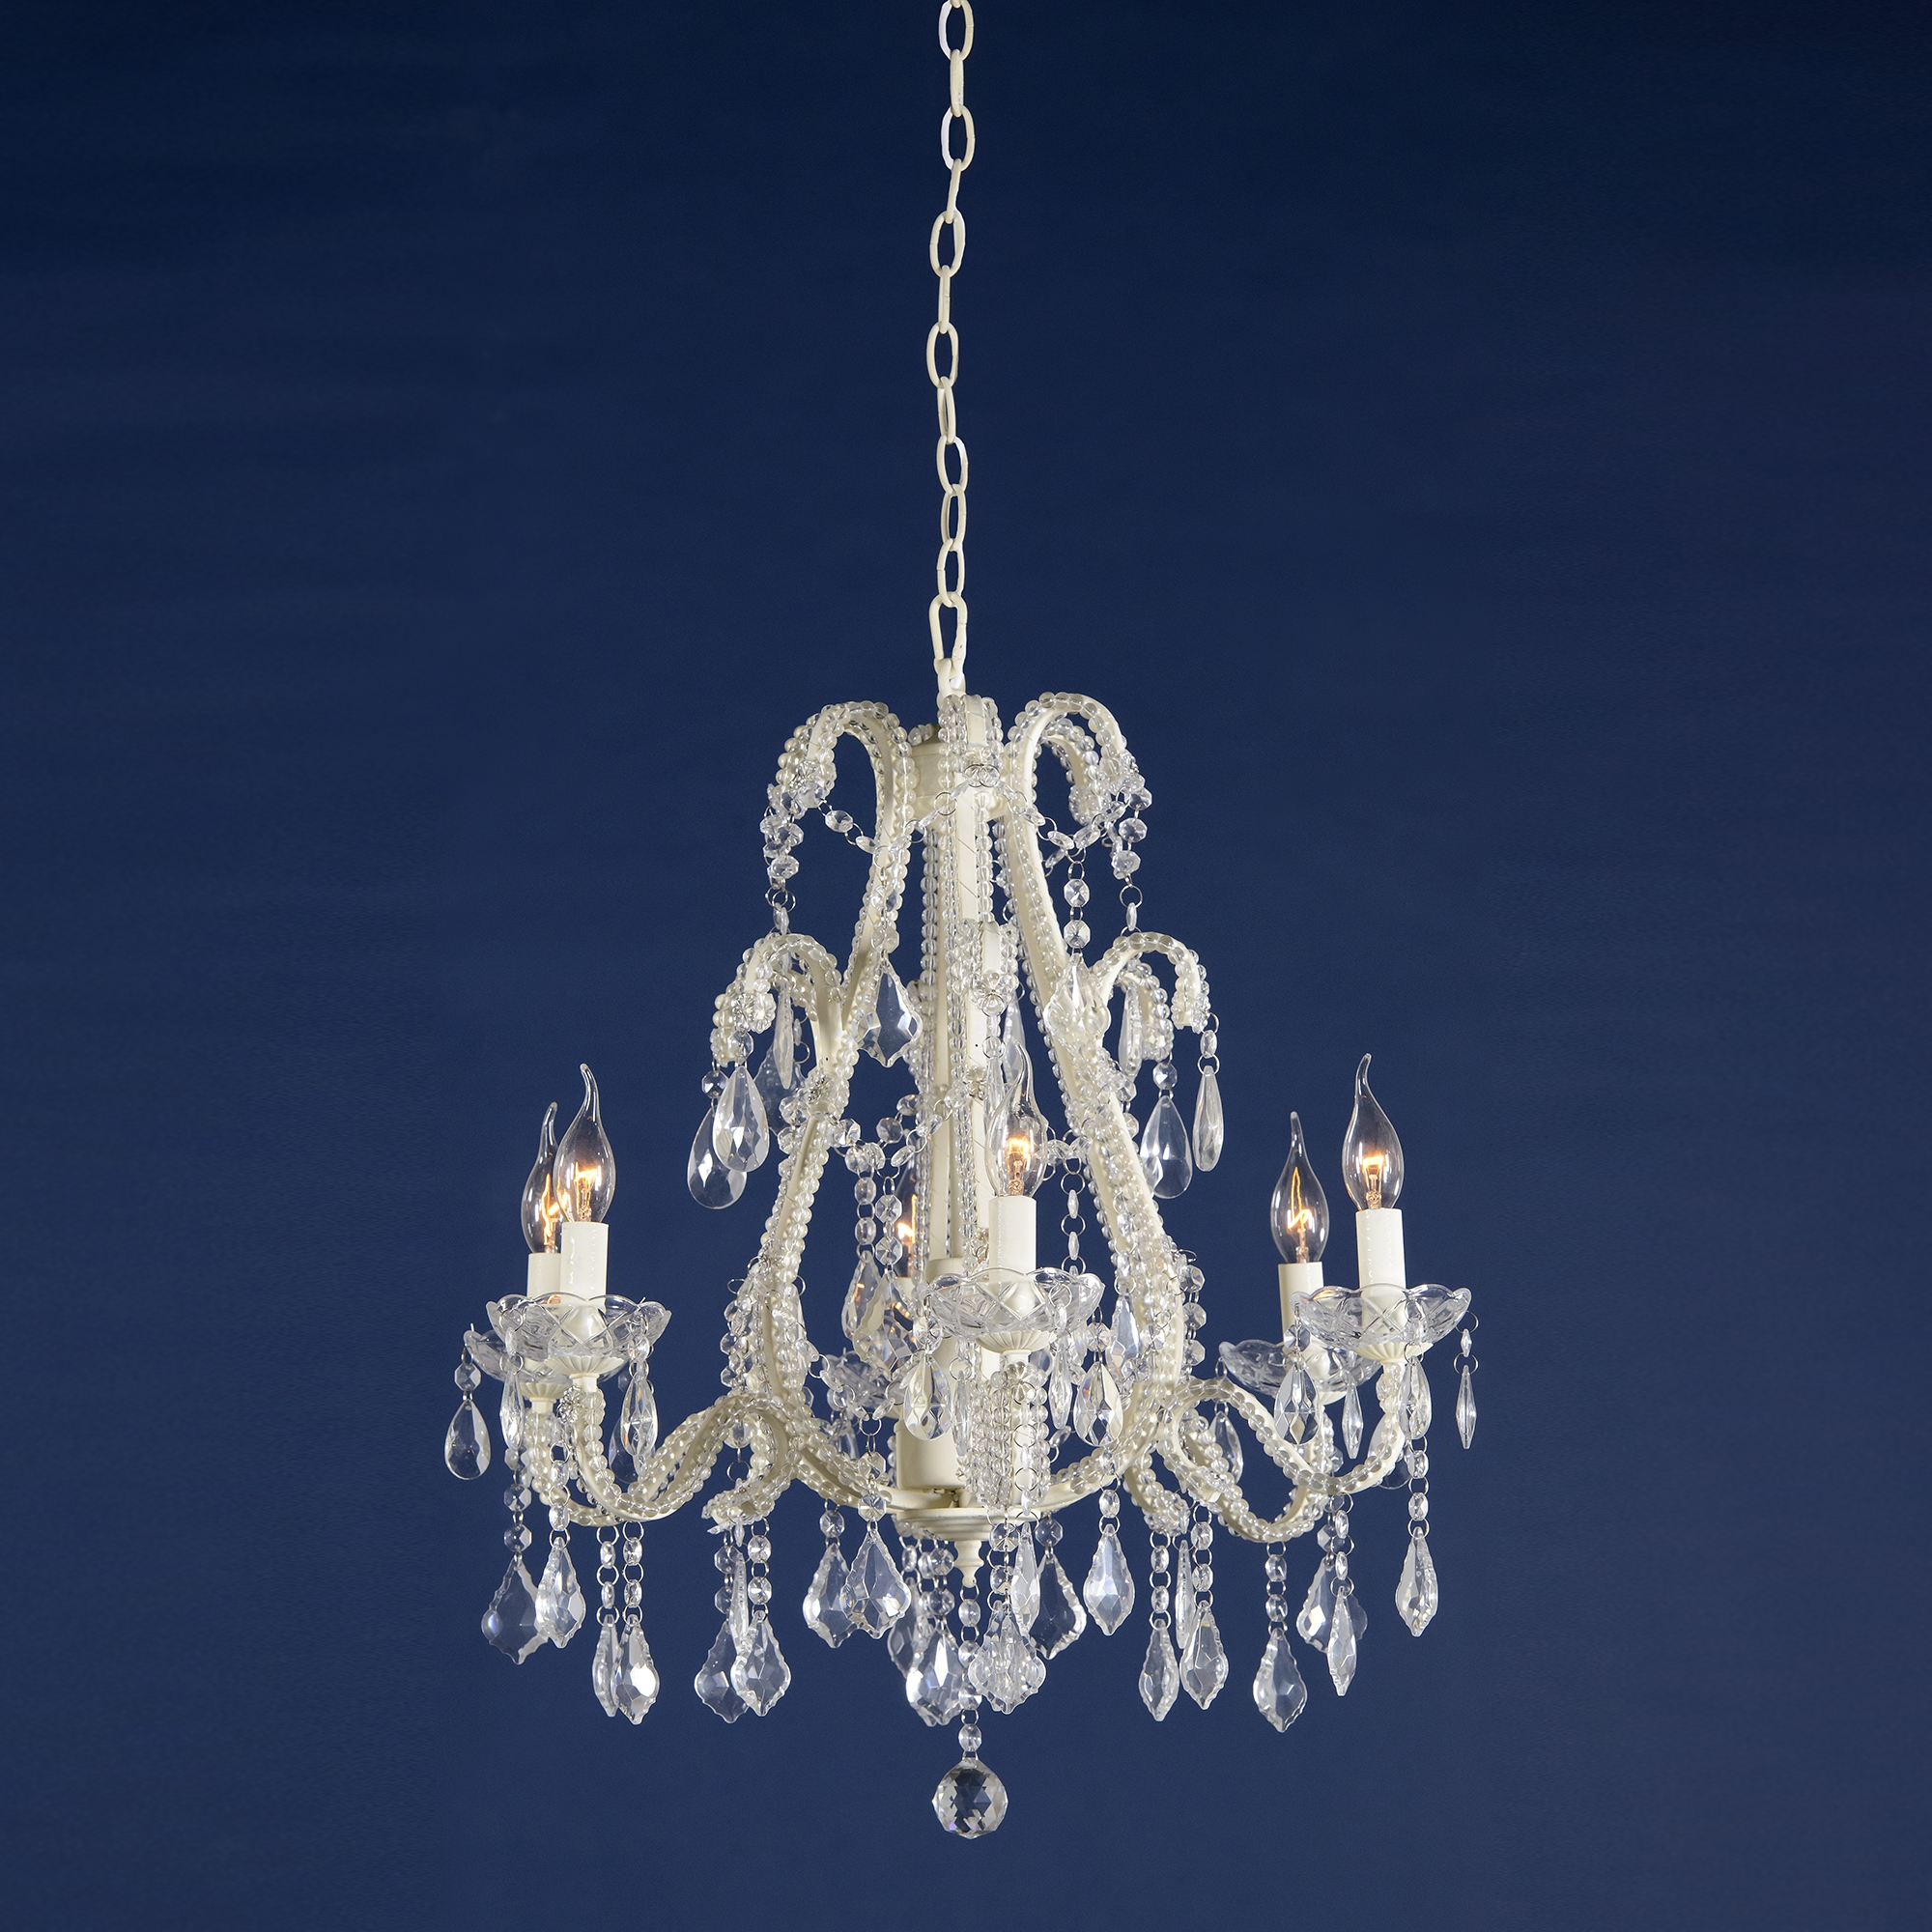 Marie Therese 6 Light Chandelier - Cream Crack